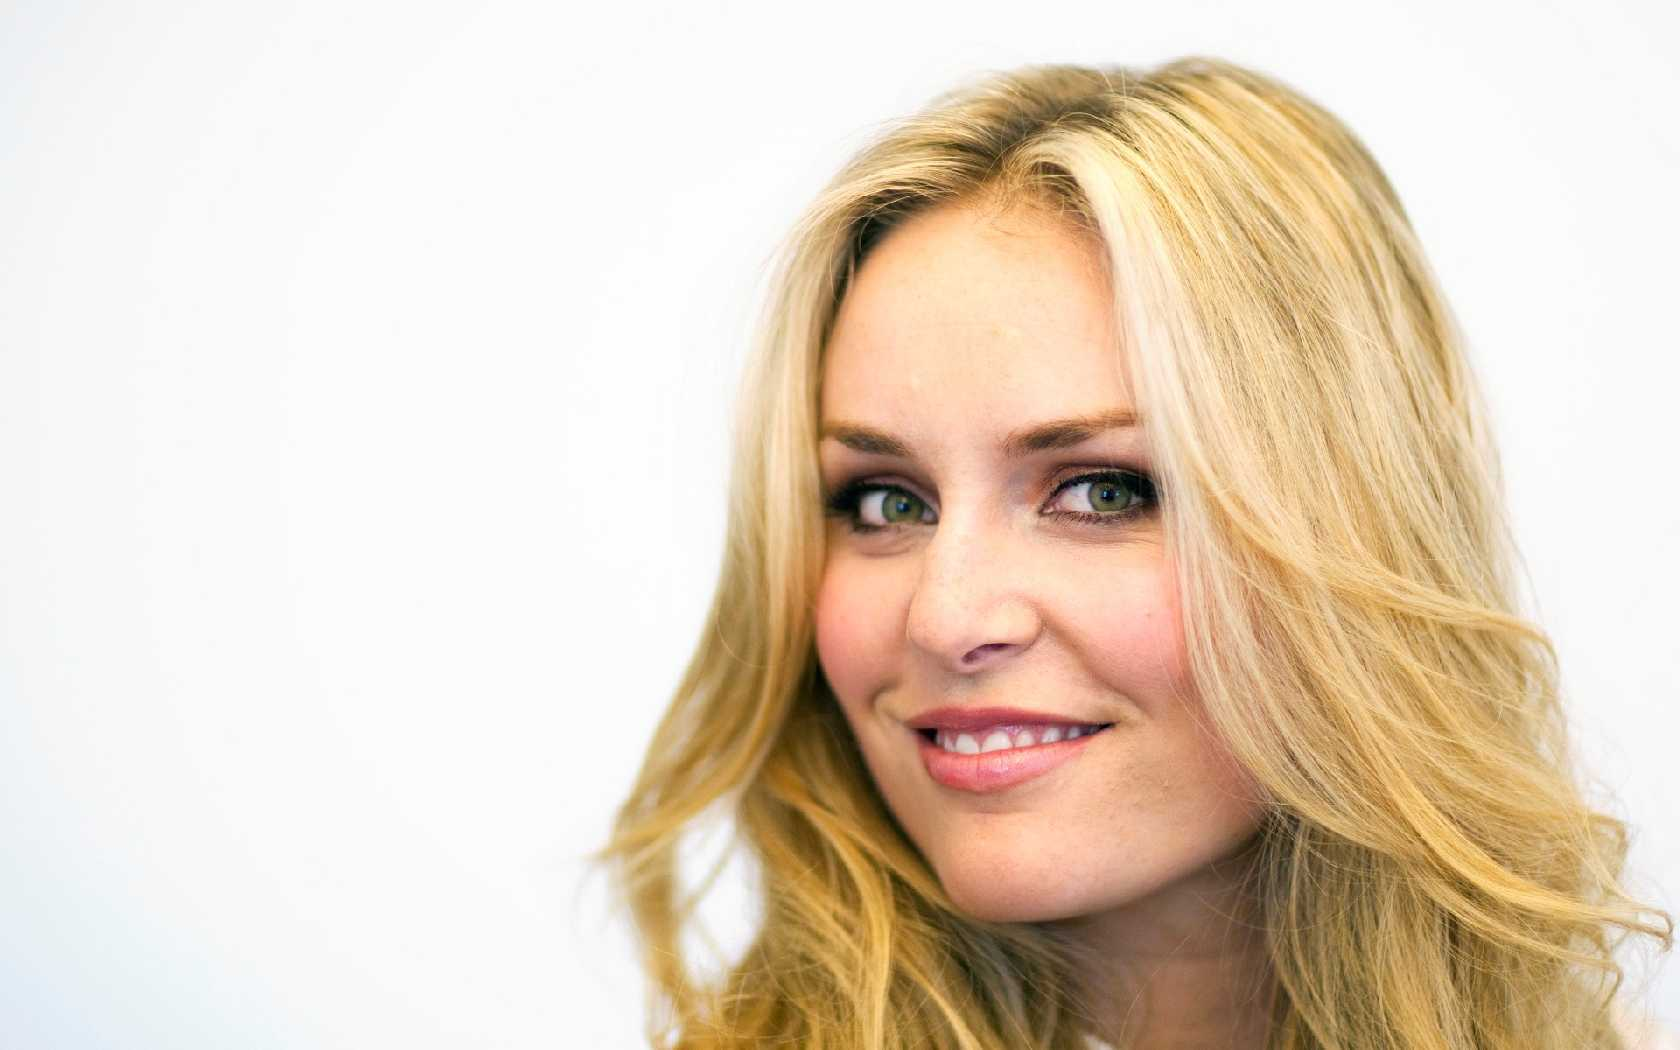 Lindsey Vonn: Lindsey Vonn Wallpapers Images Photos Pictures Backgrounds